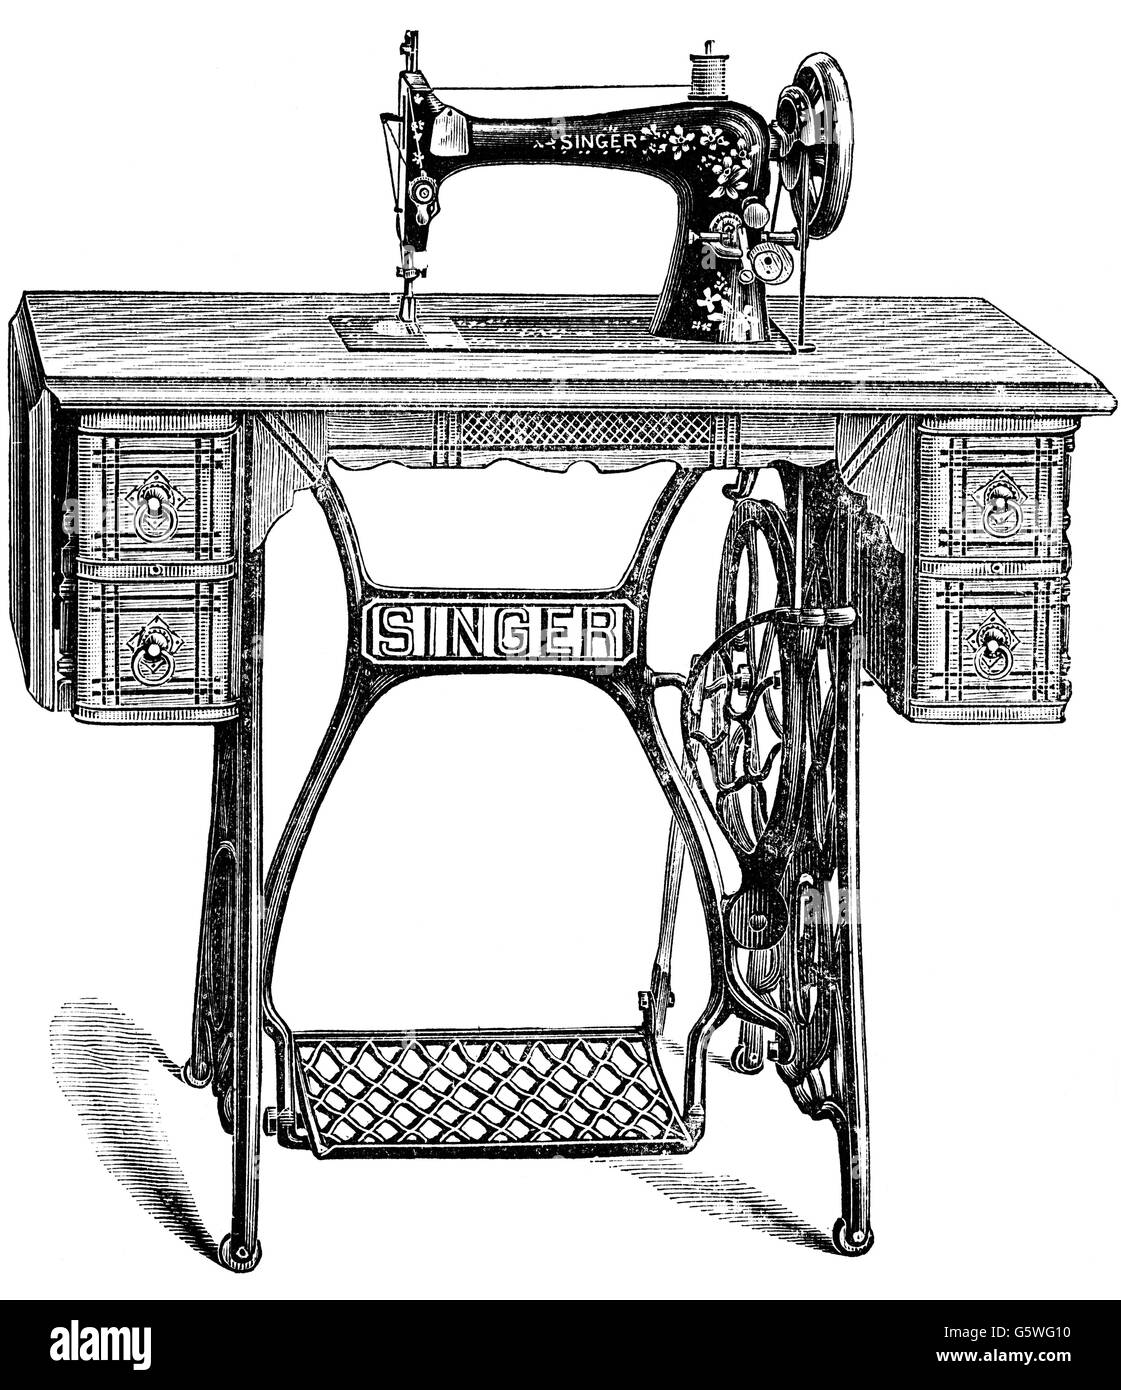 Singer Treadle Sewing Imágenes De Stock & Singer Treadle Sewing ...